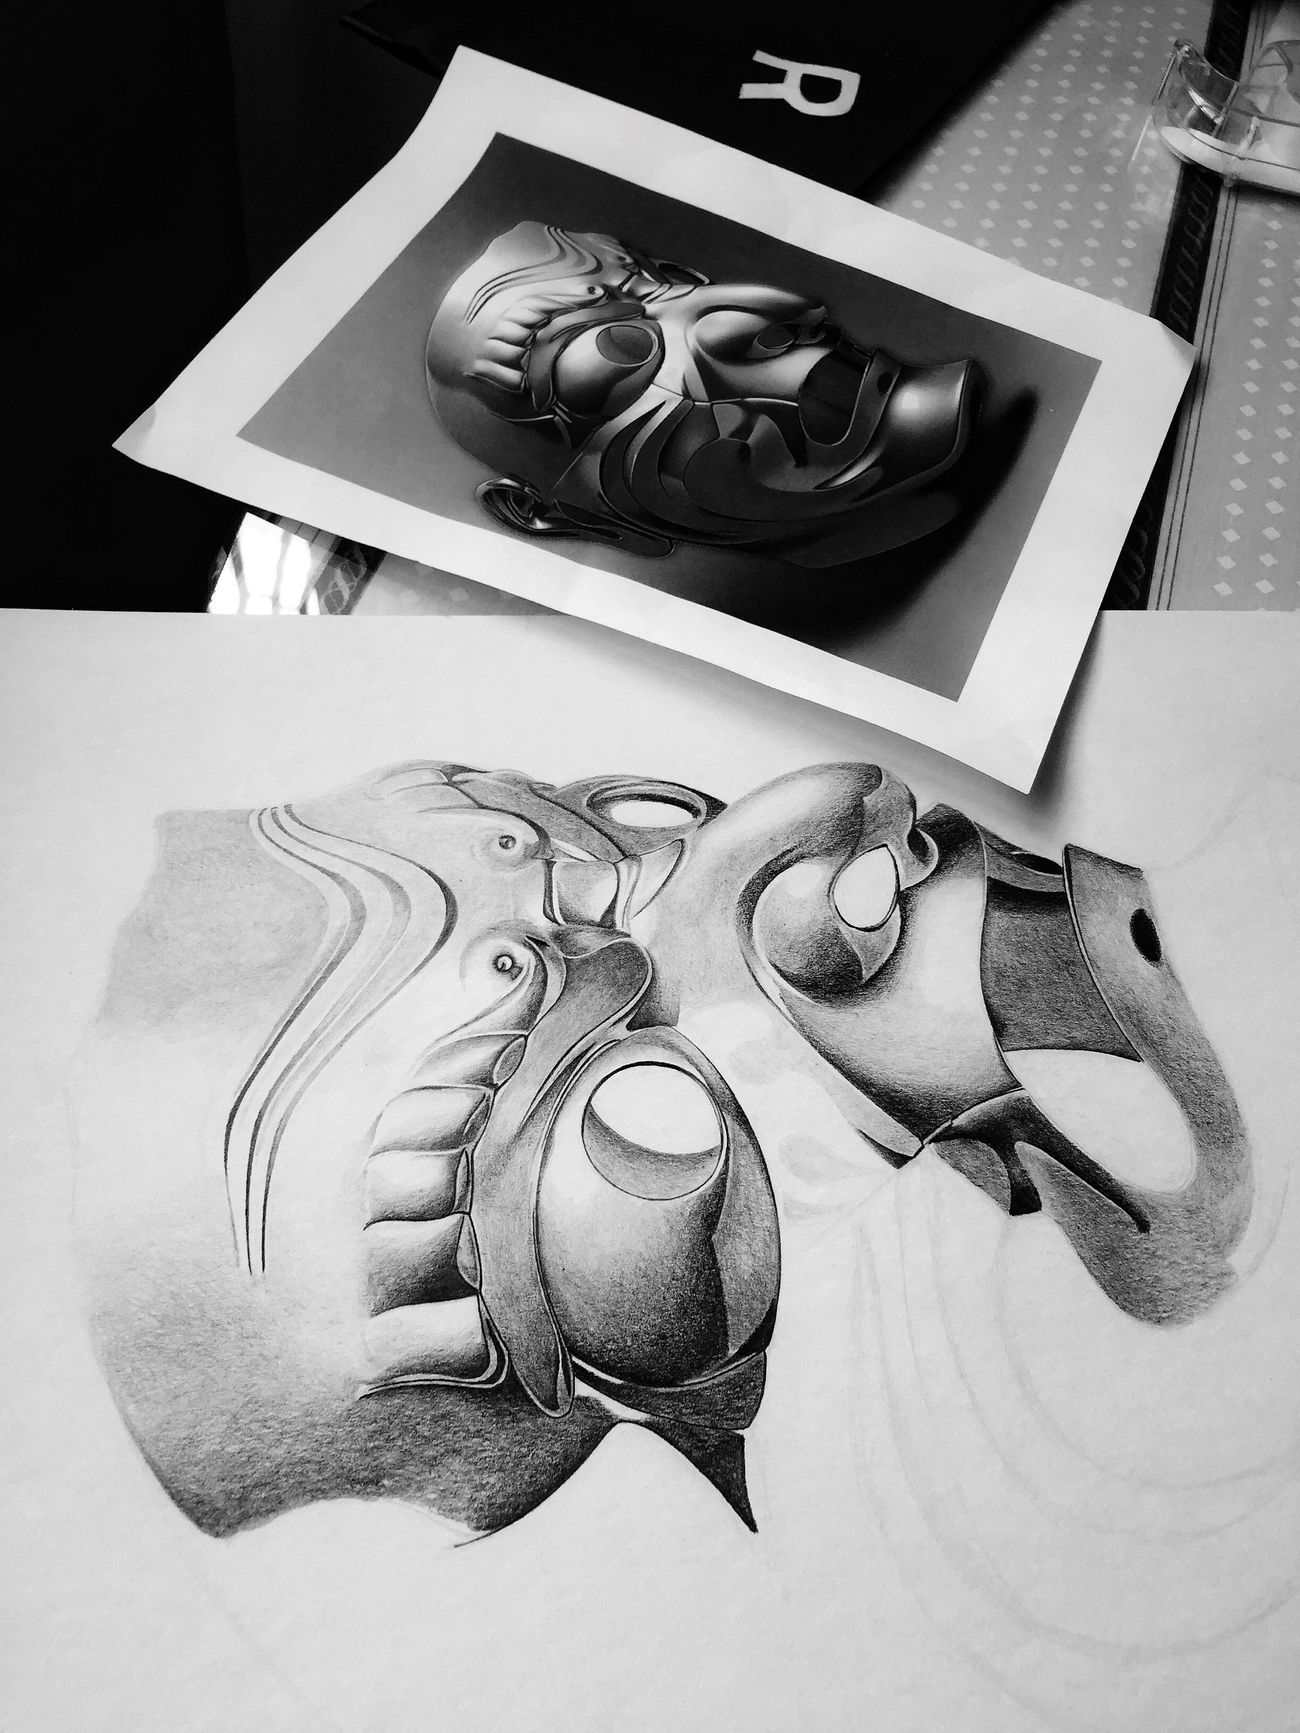 My Drawing Black & White Black & Gray Art, Drawing, Creativity Inspiracion Drawingtime Grayscale Dibujo A Lapiz La Mente Detras Del Lapiz